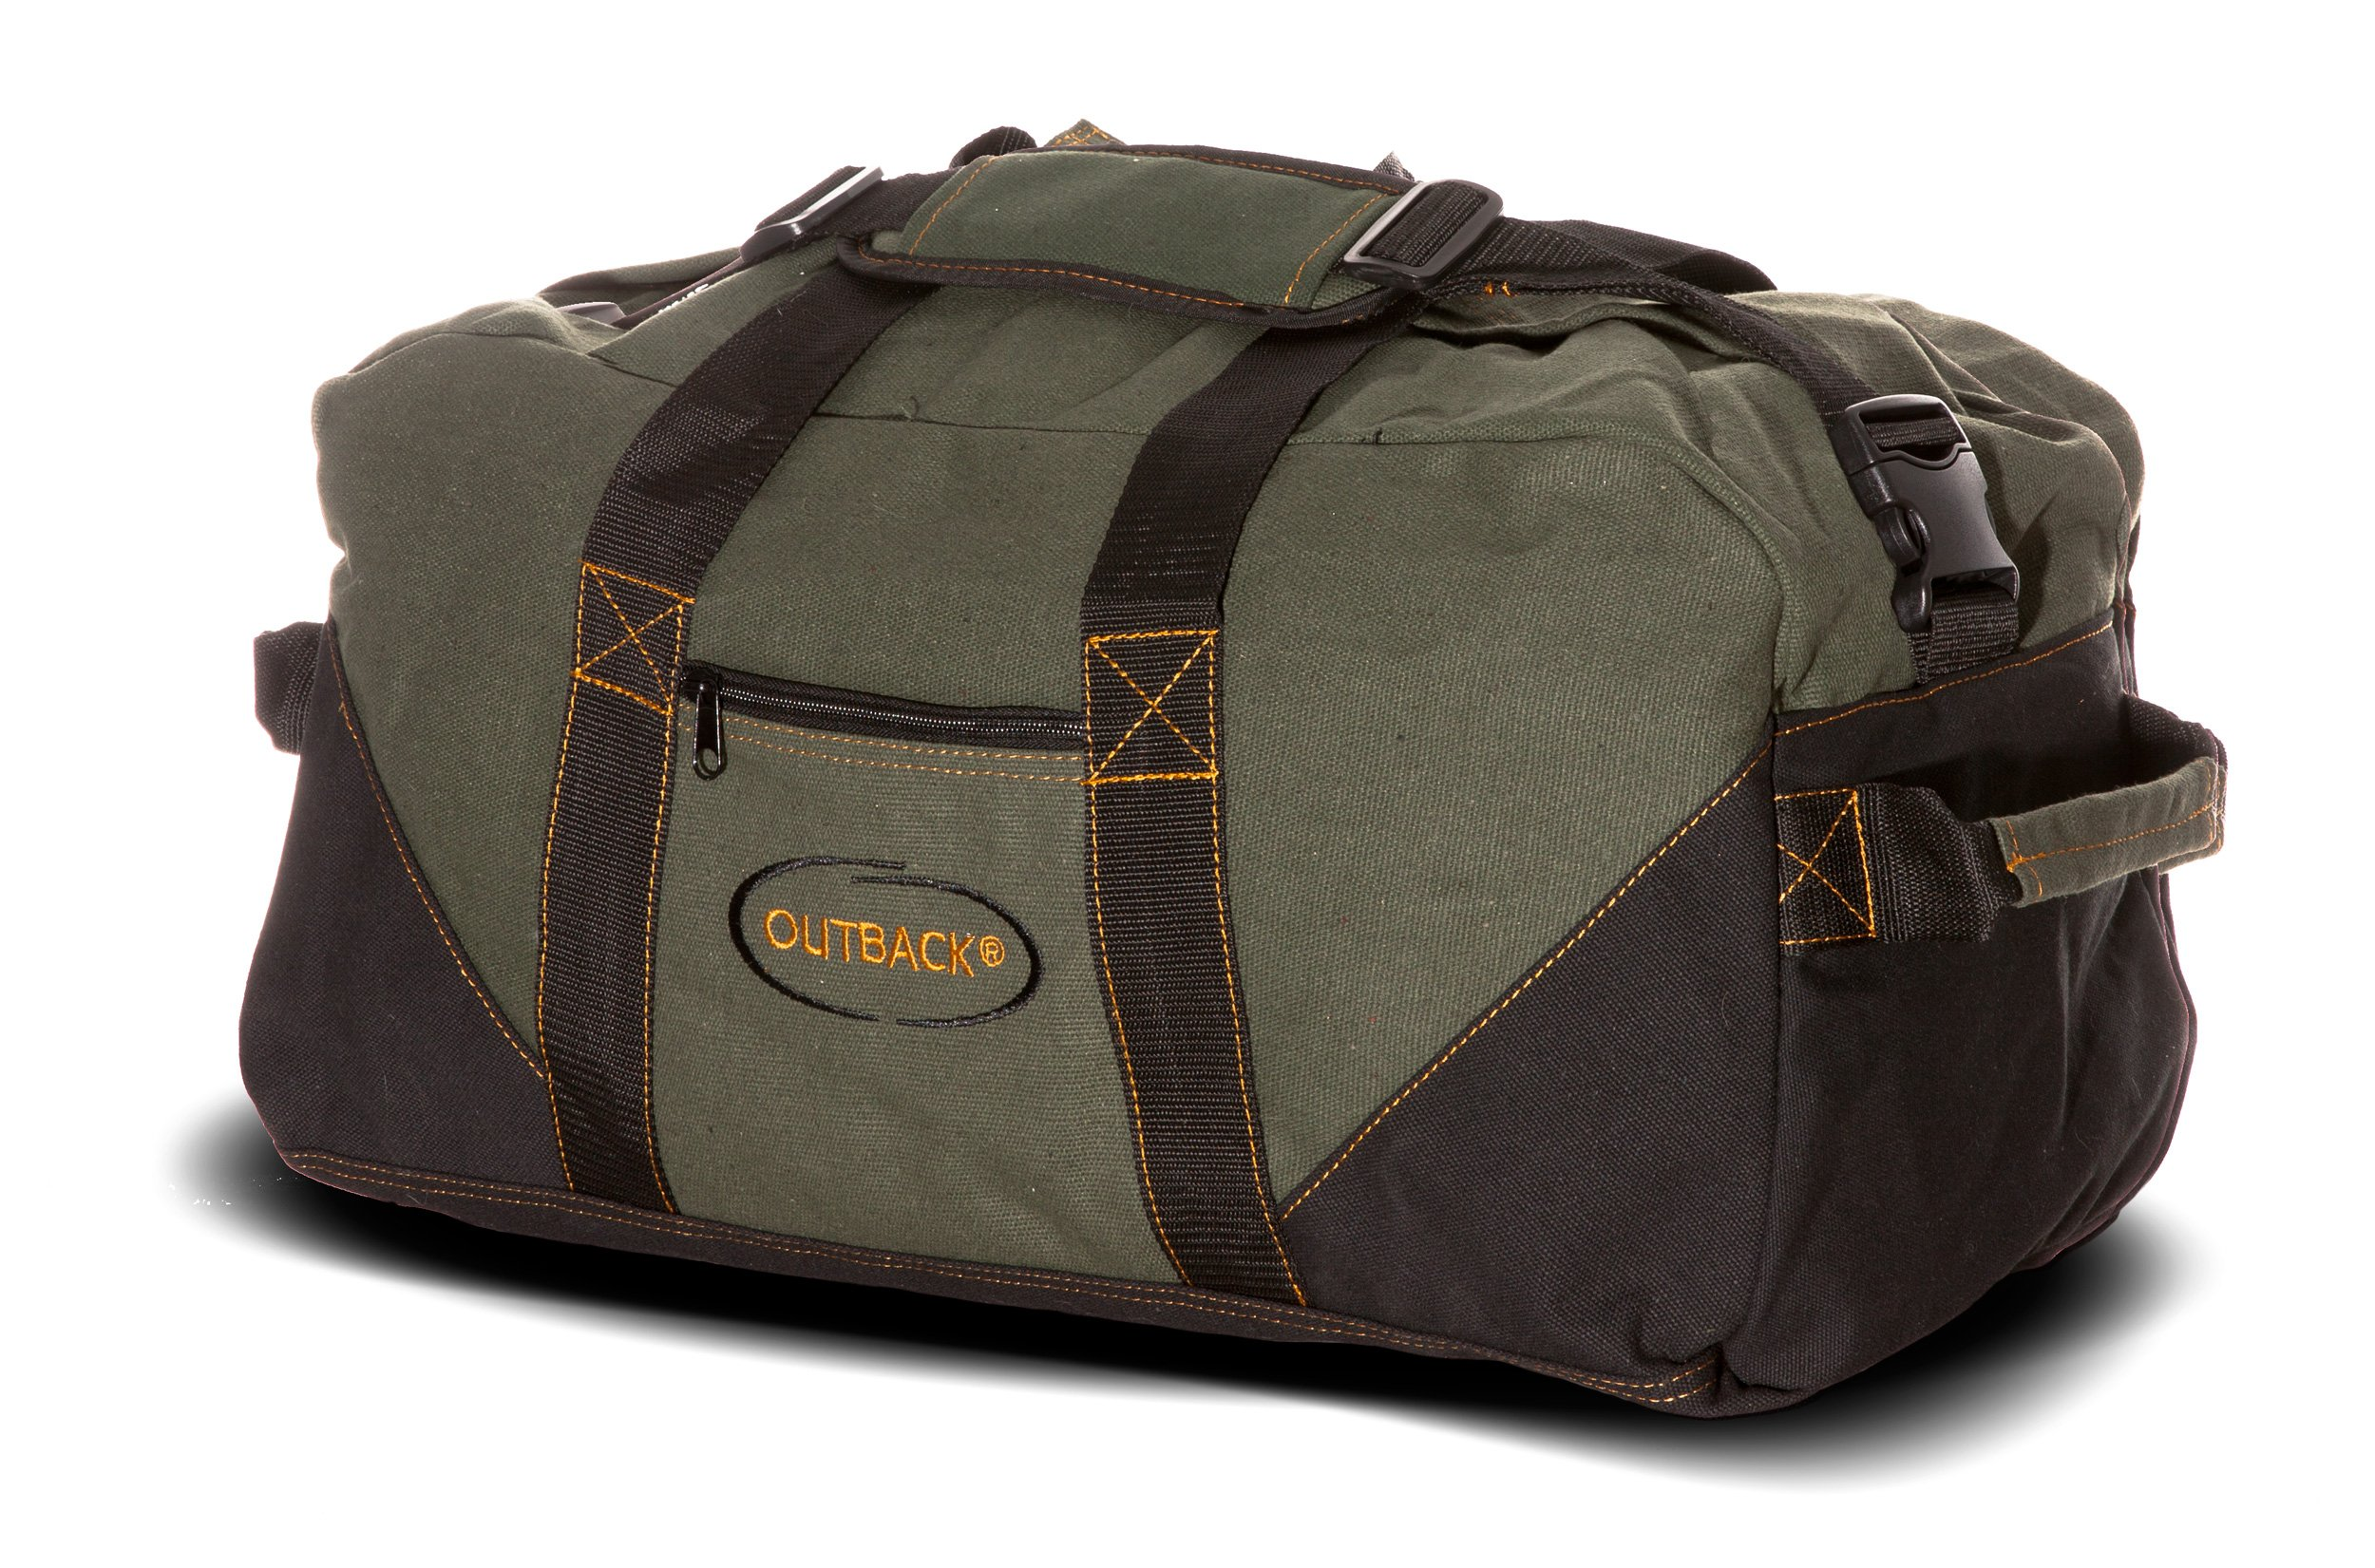 Ledmark Heavyweight Cotton Canvas Outback Gym Bag, Black/Green, 24'' x 16''